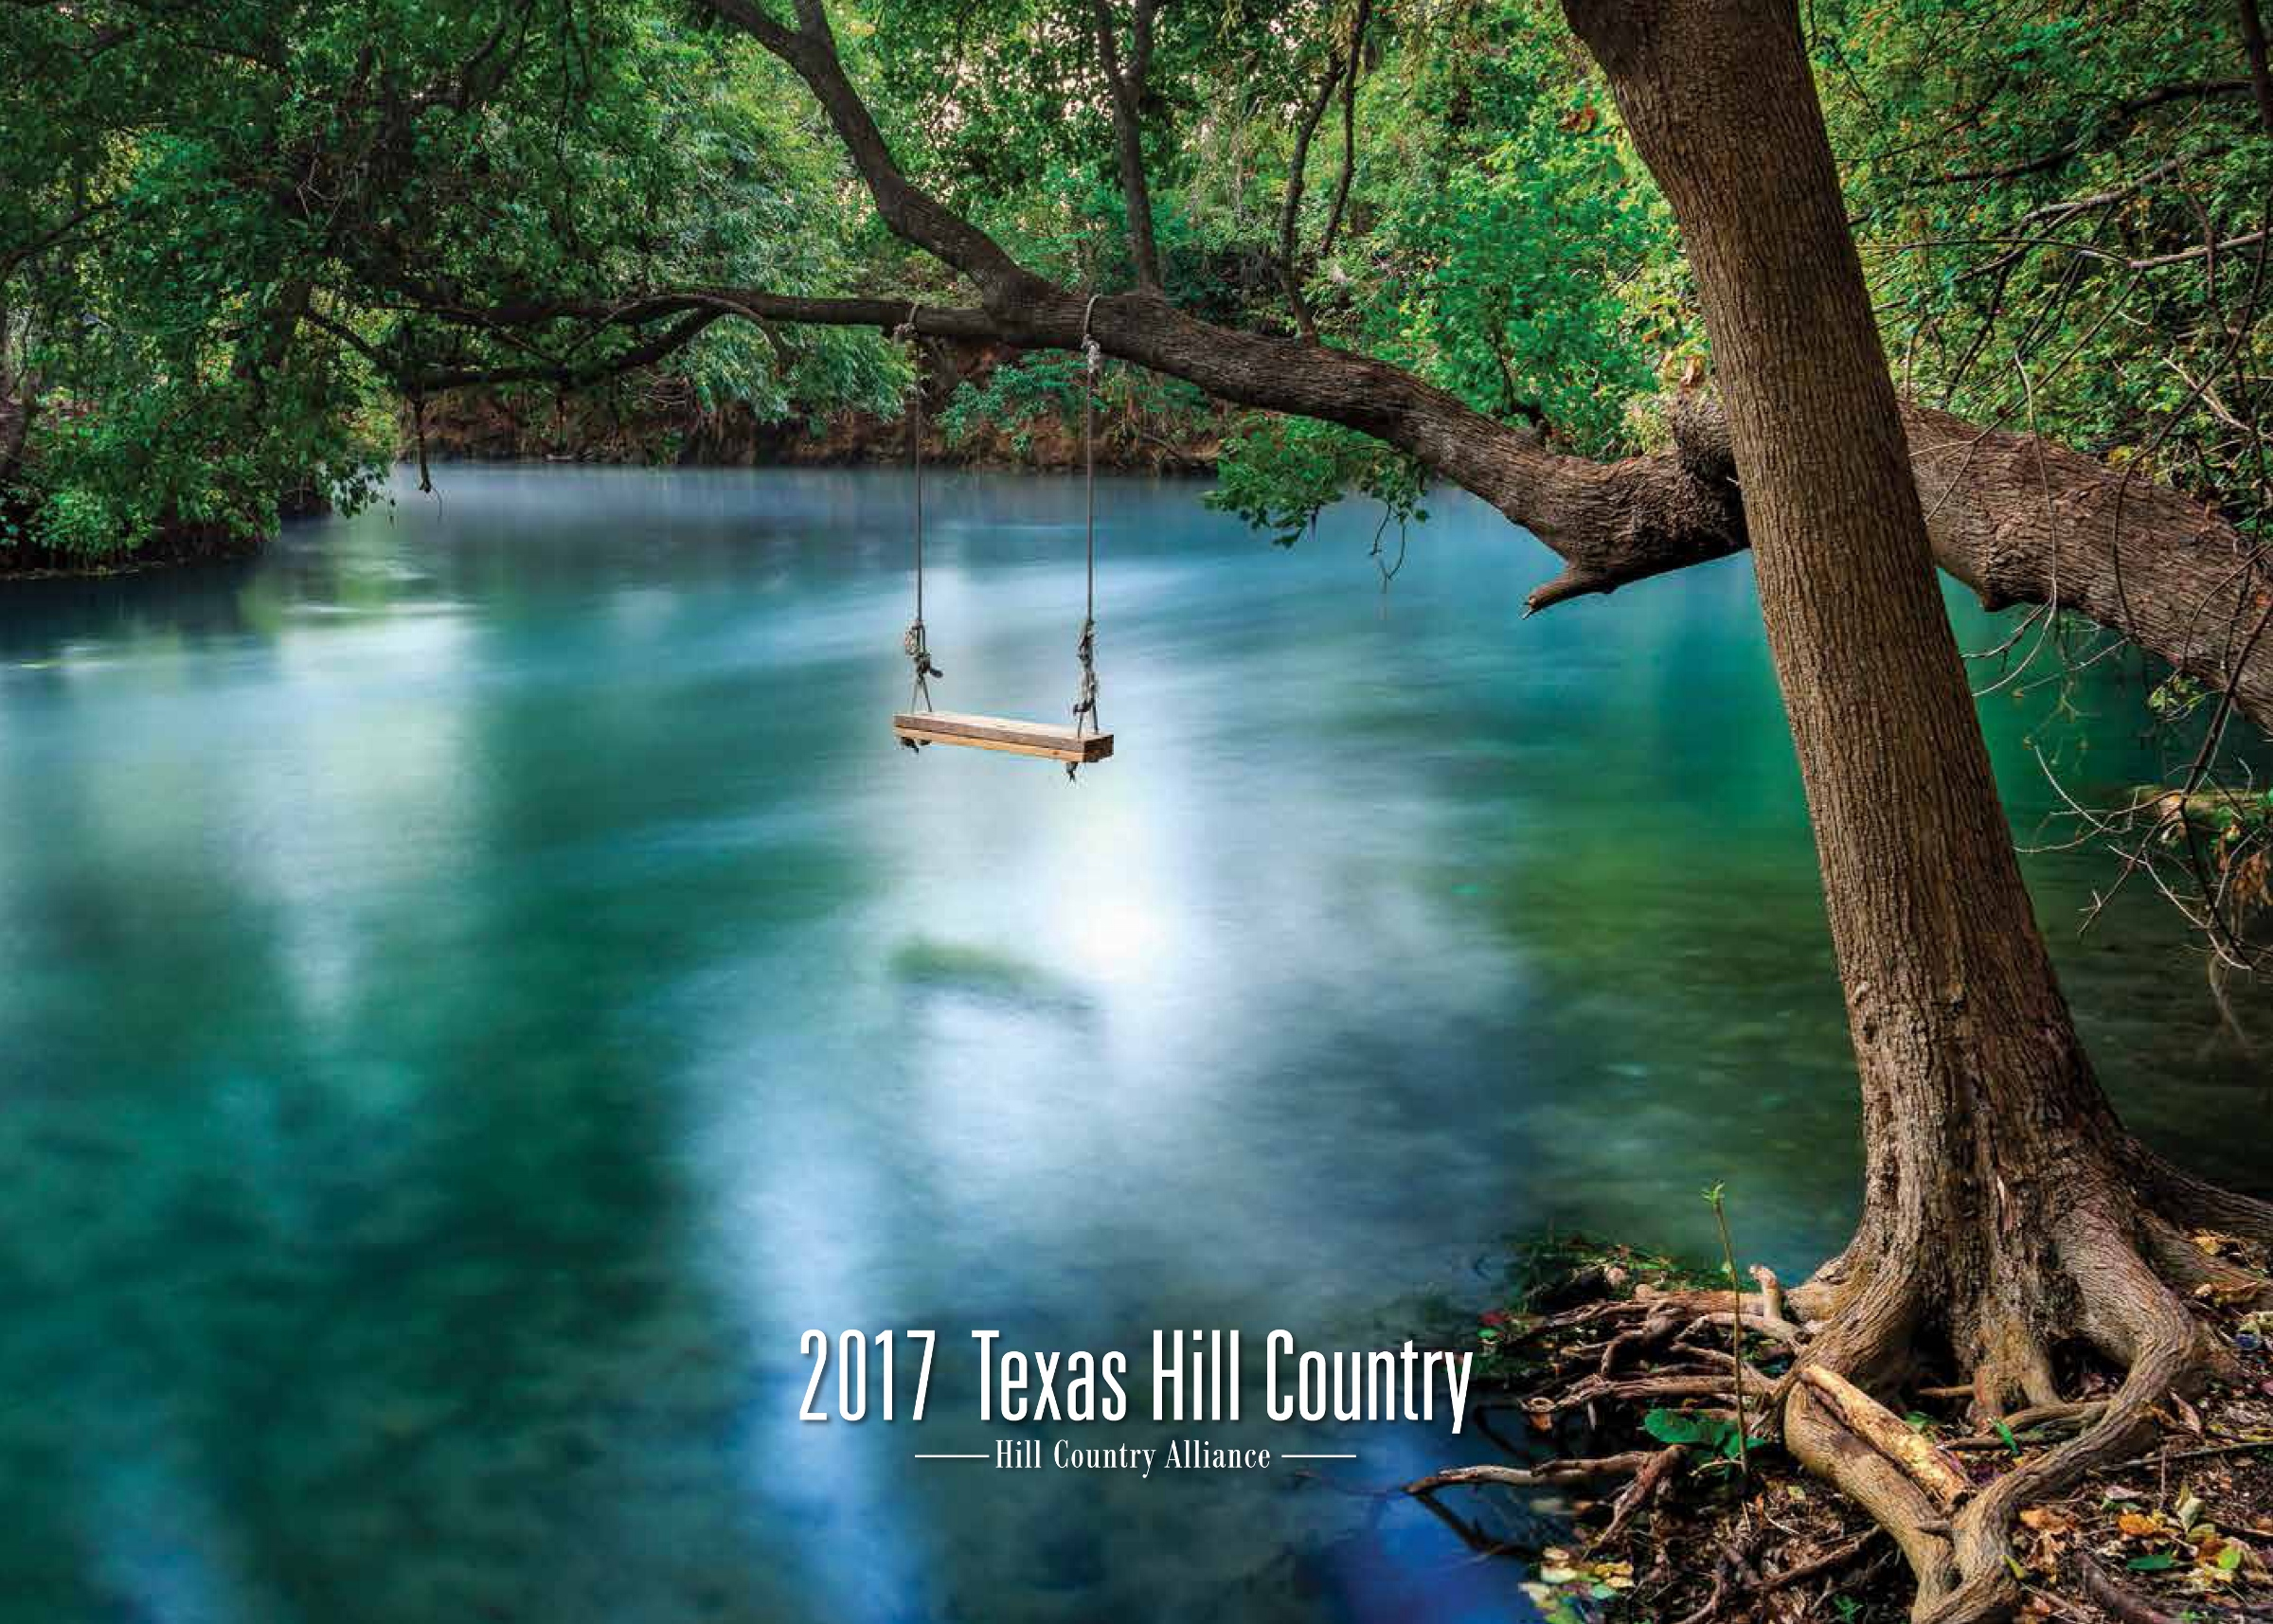 2017 Texas Hill Country Calendar Available for Sale: Photo Contest Winners Announced